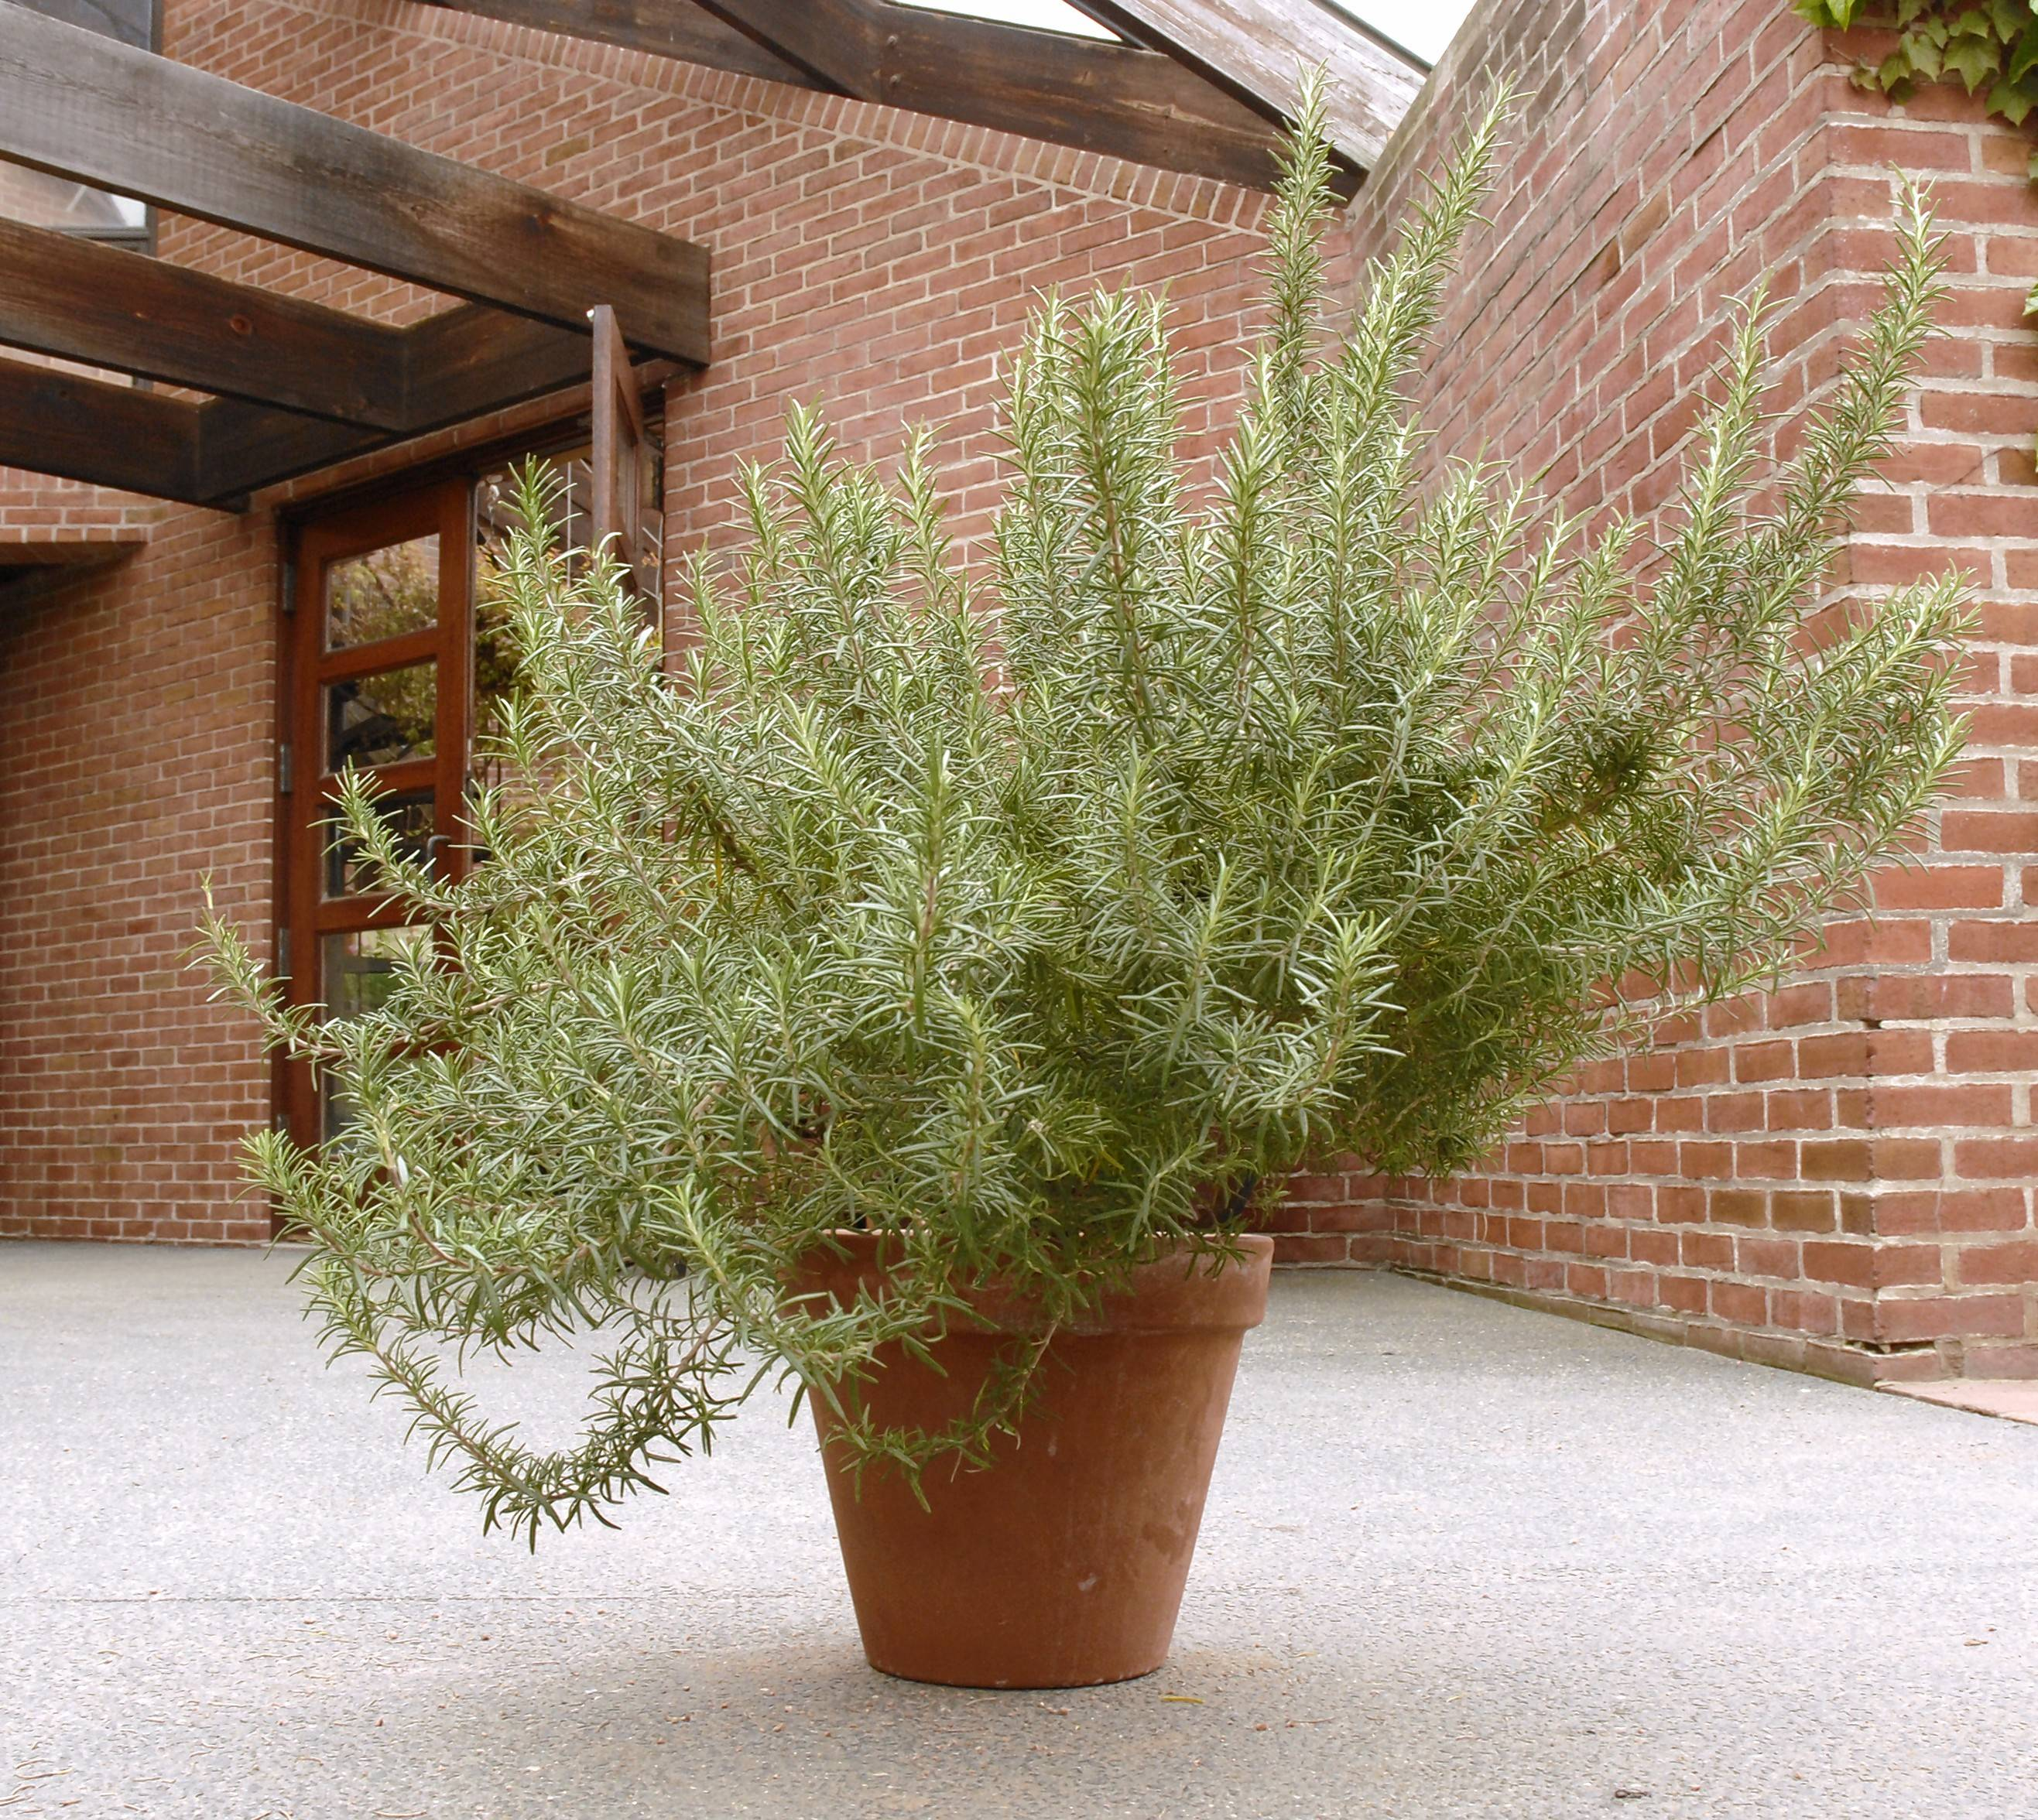 Rosemary and other herbs can be potted, brought indoors, grown and used over the winter.